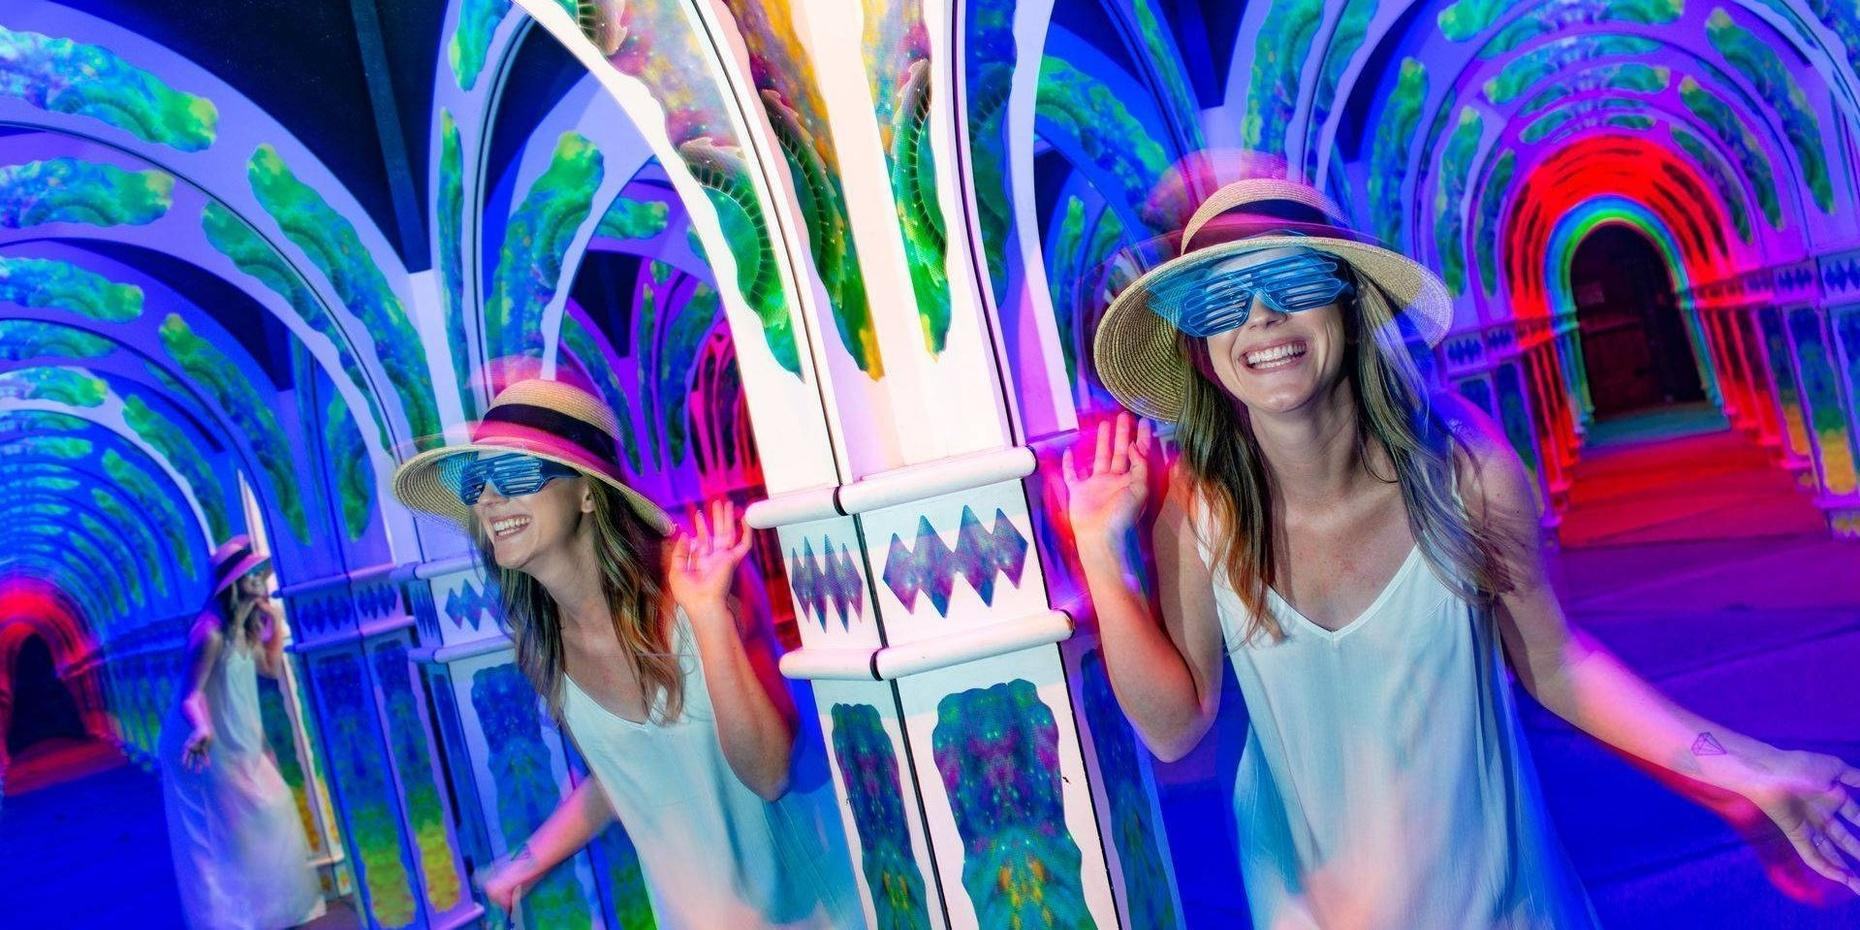 Magowan's Infinite Mirror Maze in San Francisco